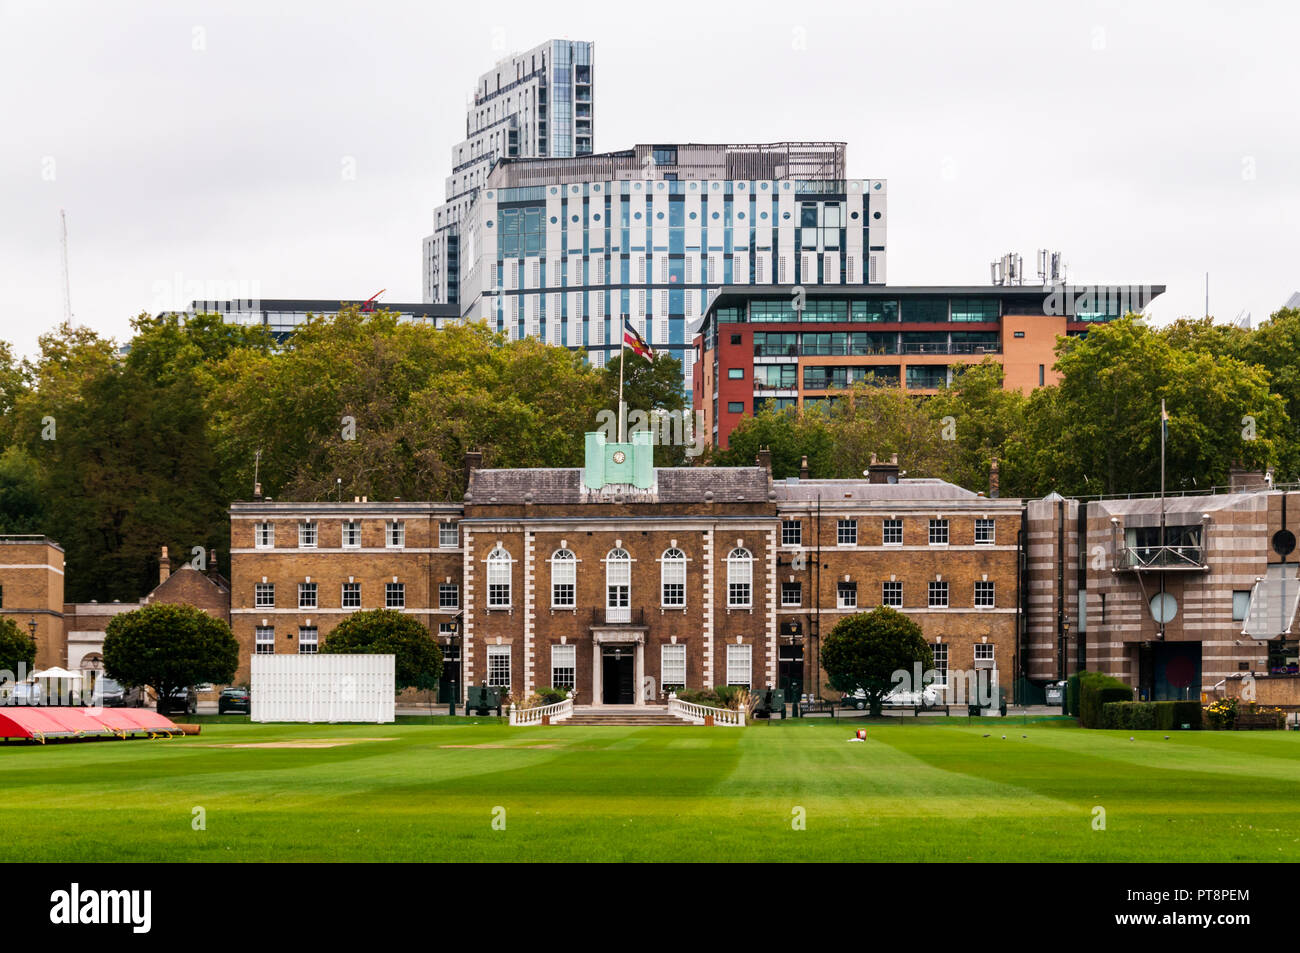 La maison d'accueil de l'honorable compagnie d'artillerie derrière le jardin d'artillerie cricket ground à Londres. Photo Stock